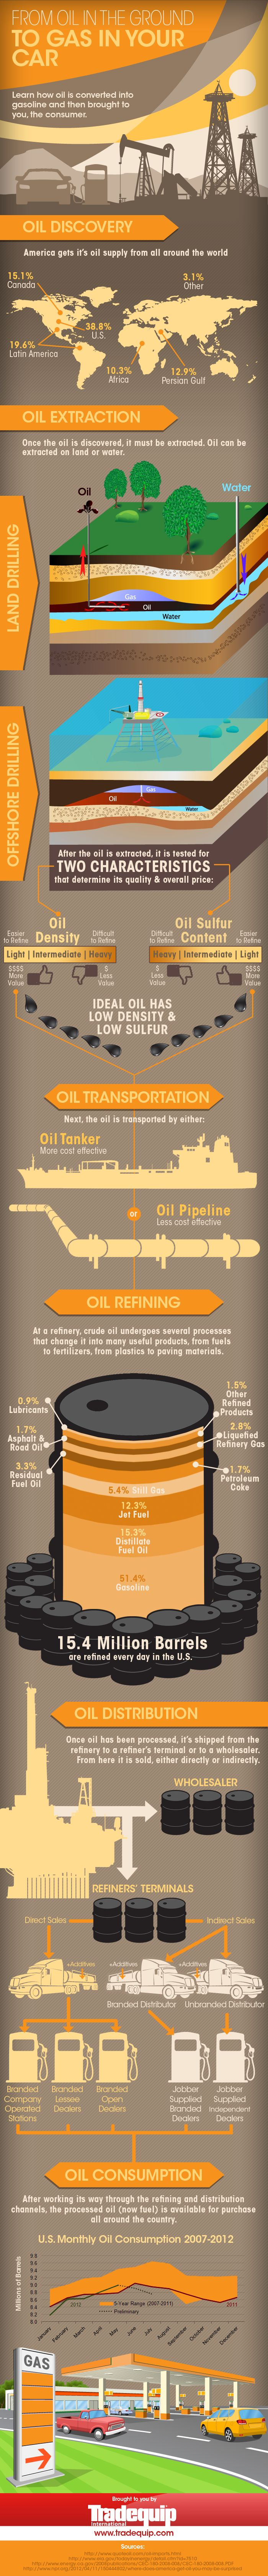 Great Infographic that helps explain how oil gets from underground to the gas tank of your car.